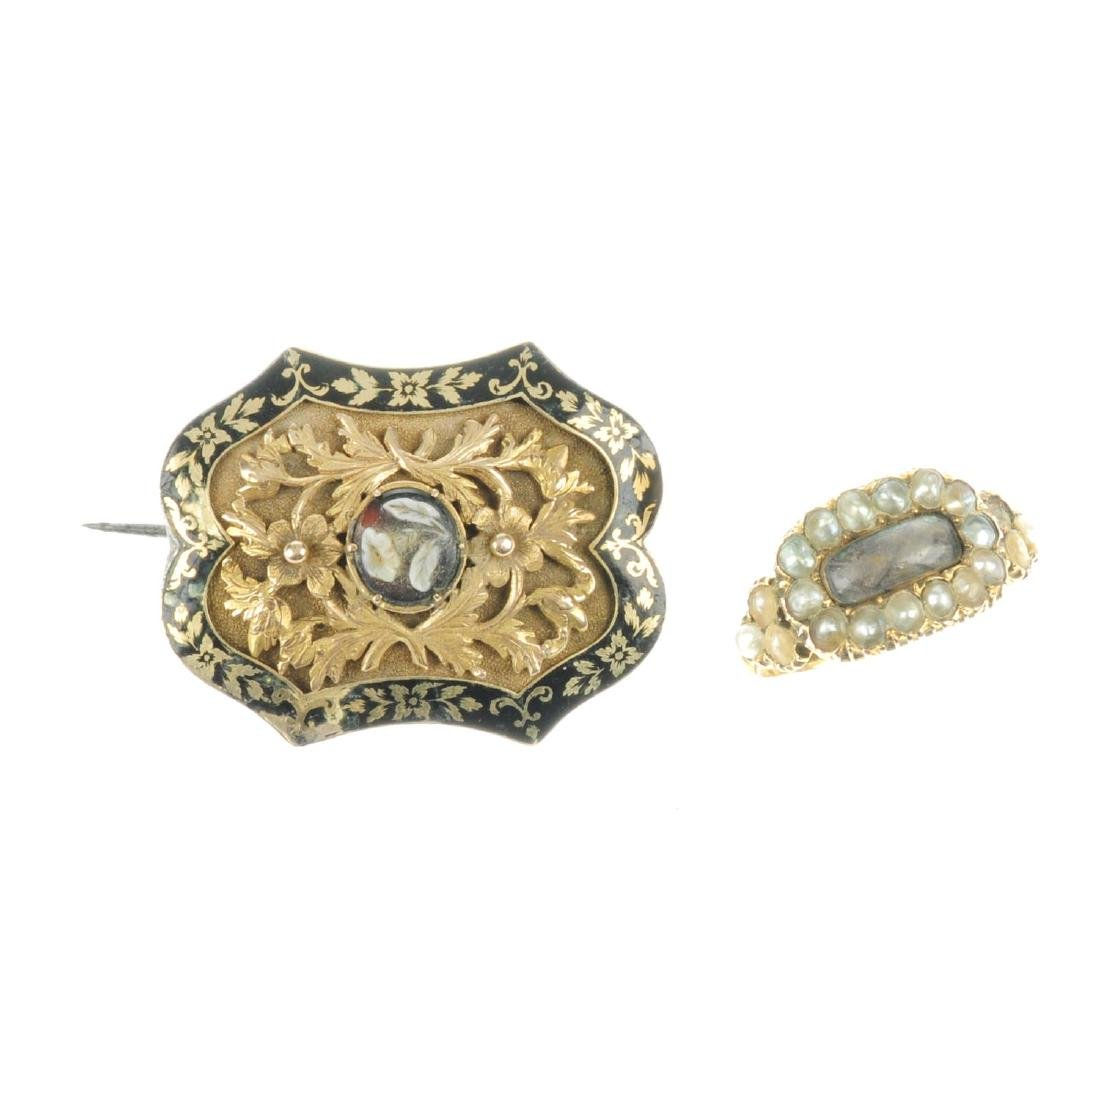 A late Georgian gold memorial brooch and ring. The